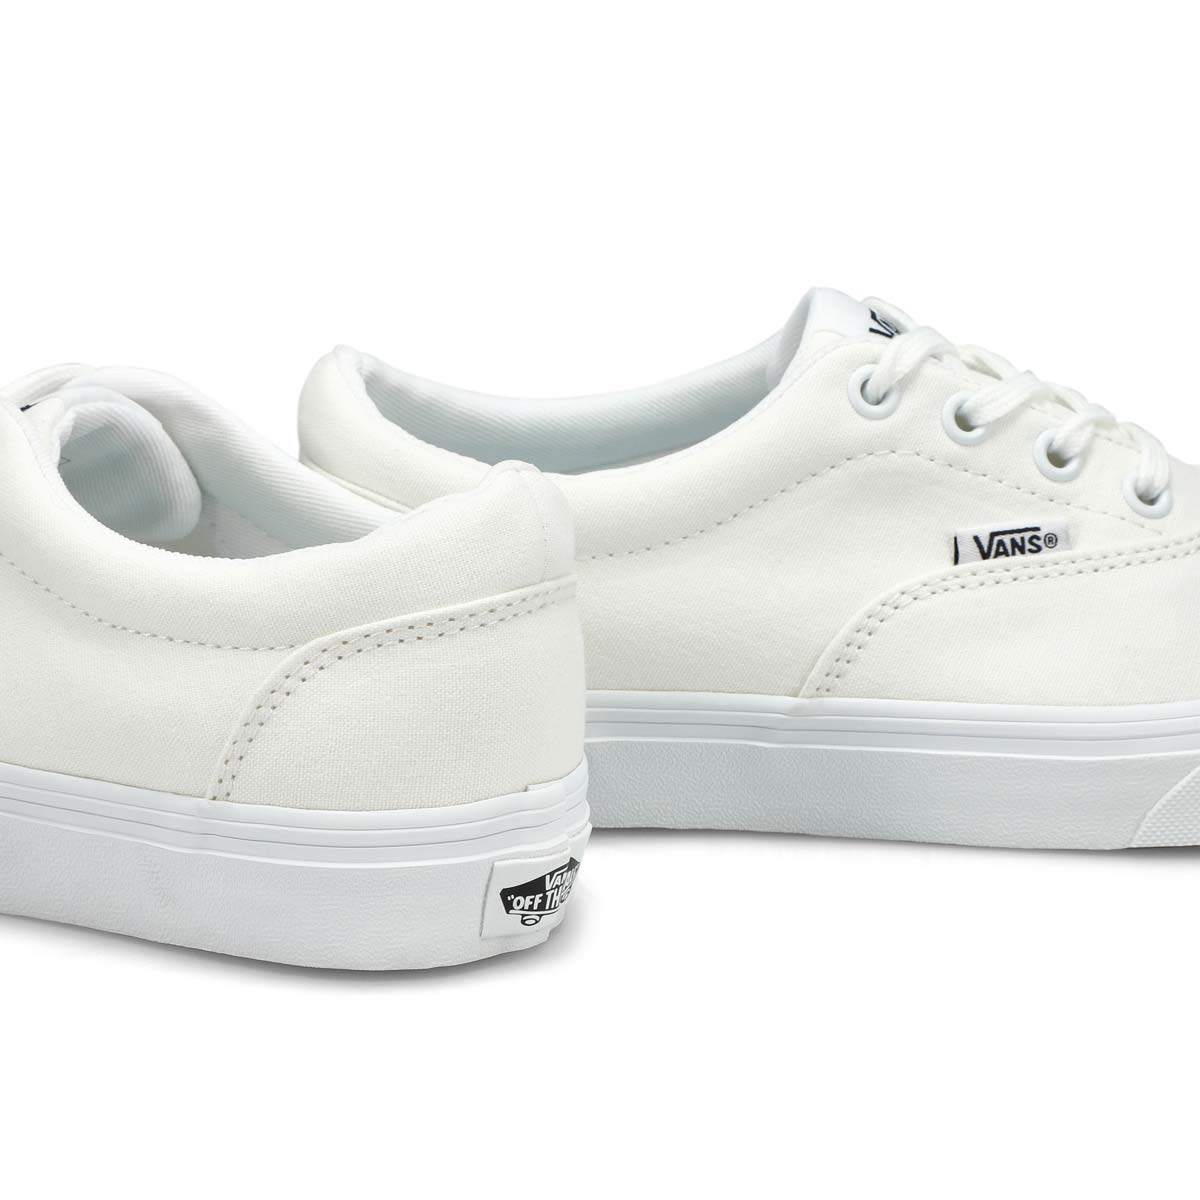 Lds Doheny wht/wht lace up snkr